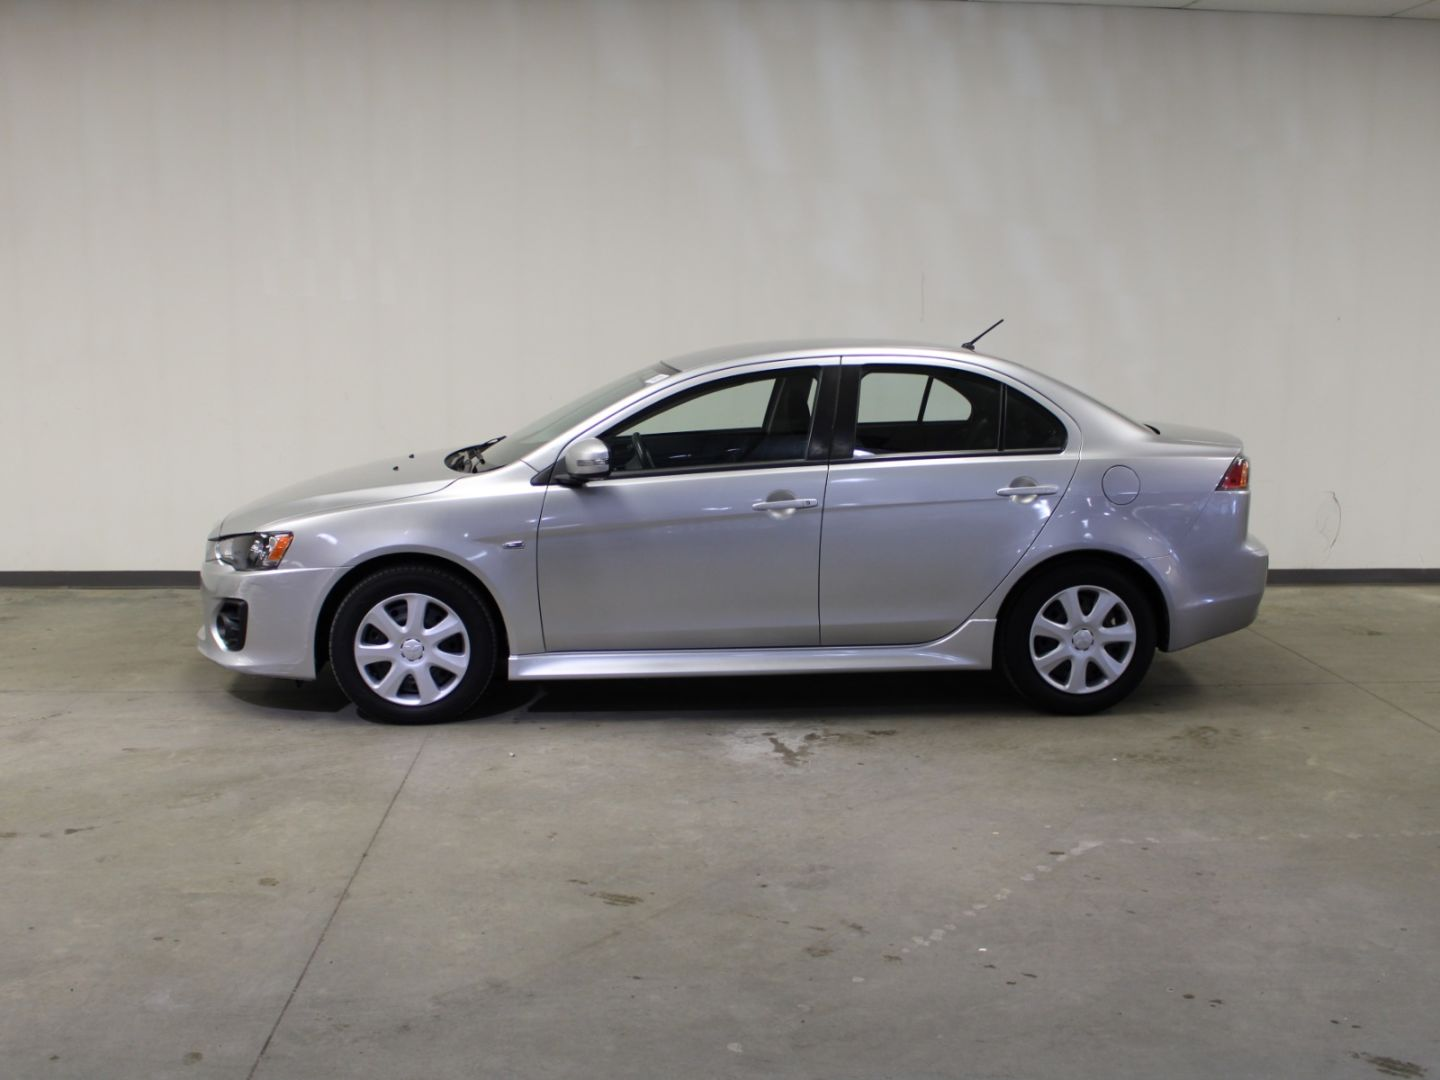 2016 Mitsubishi Lancer ES for sale in Edmonton, Alberta